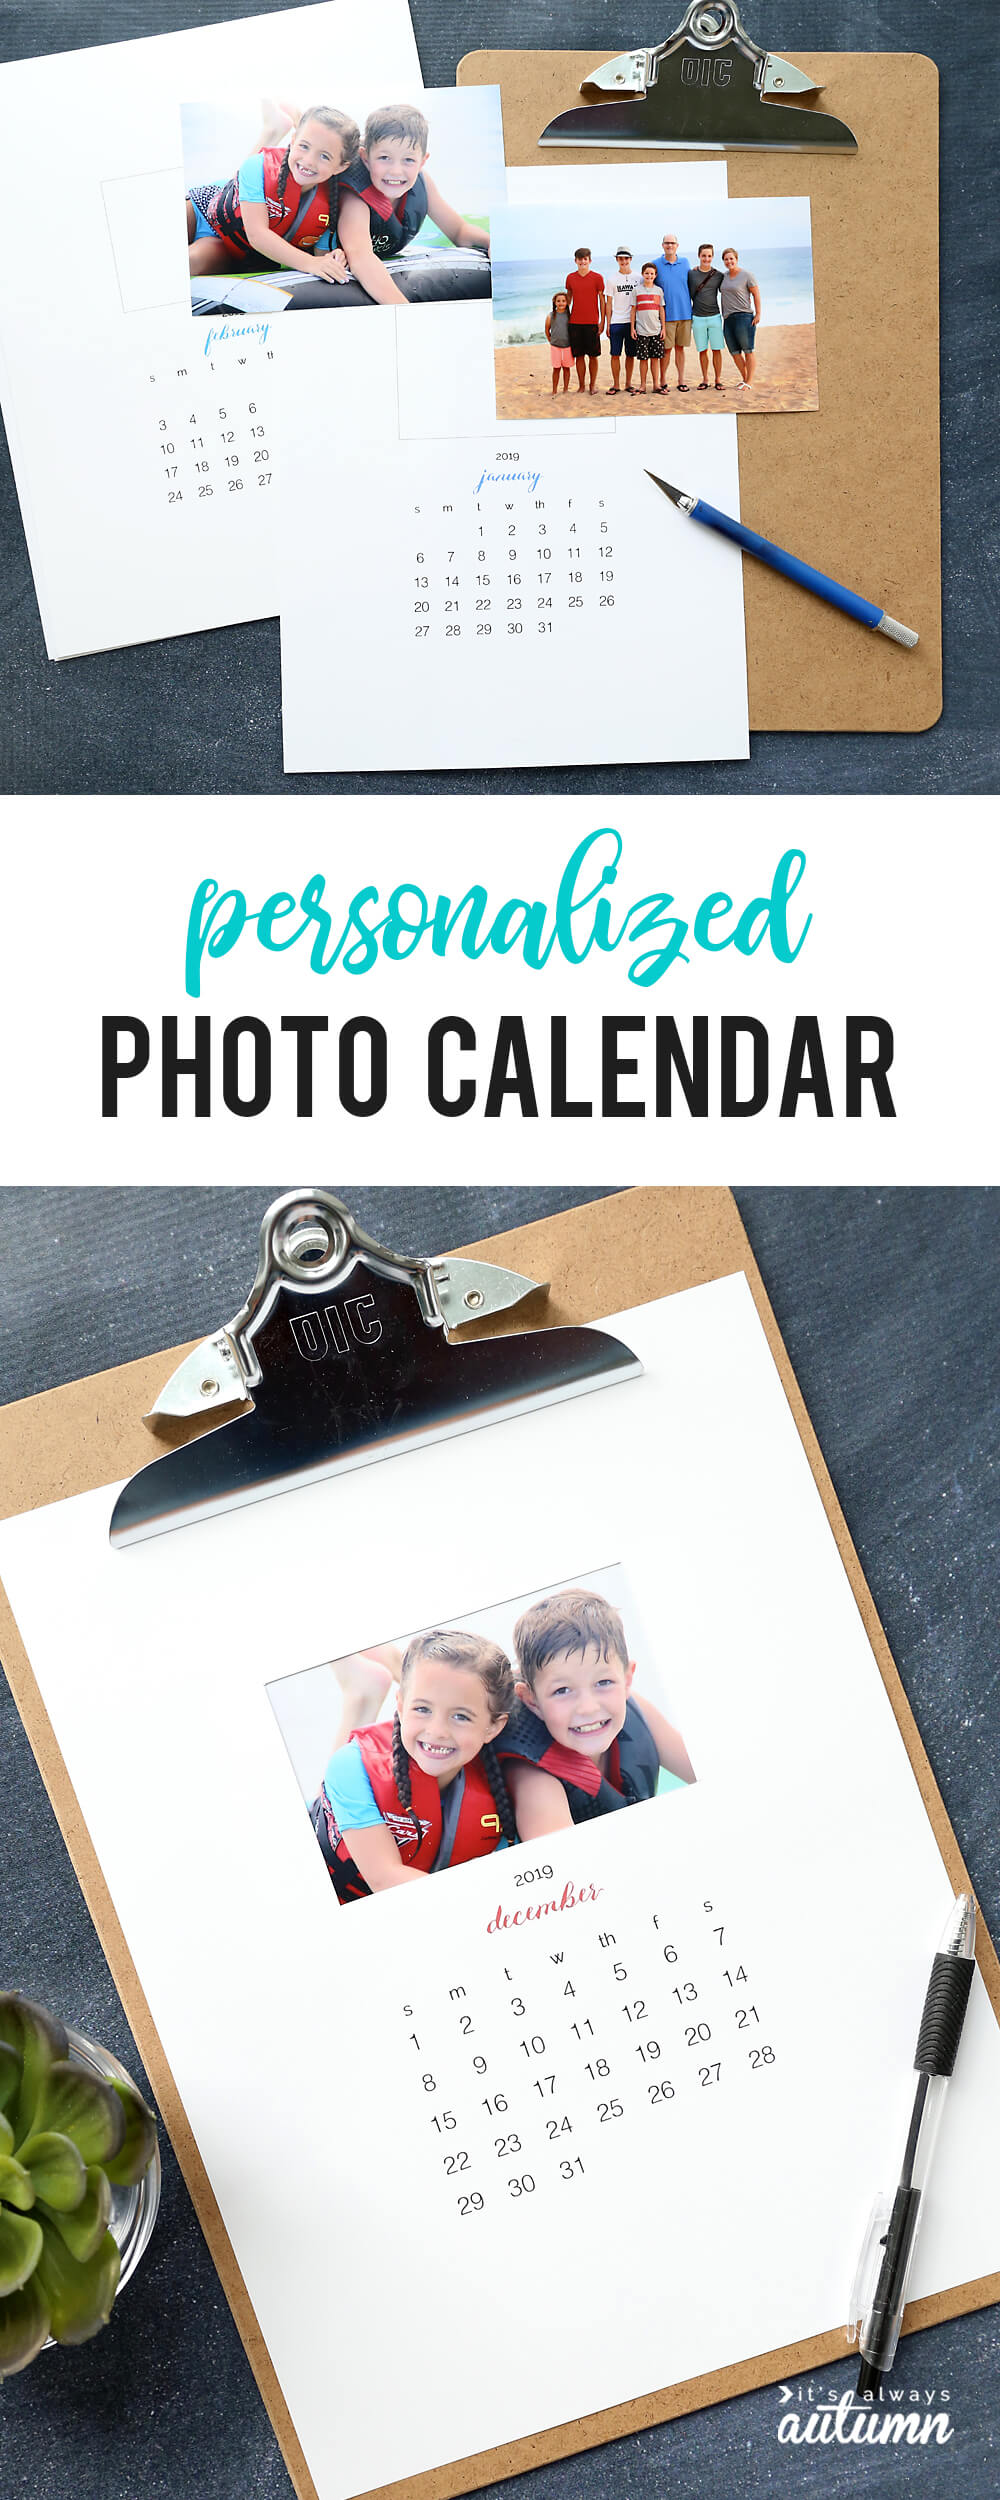 Personalized DIY photo calendar | Christmas Gifts for Grandparents: Creative Holiday Ideas for Grandma and Grandpa